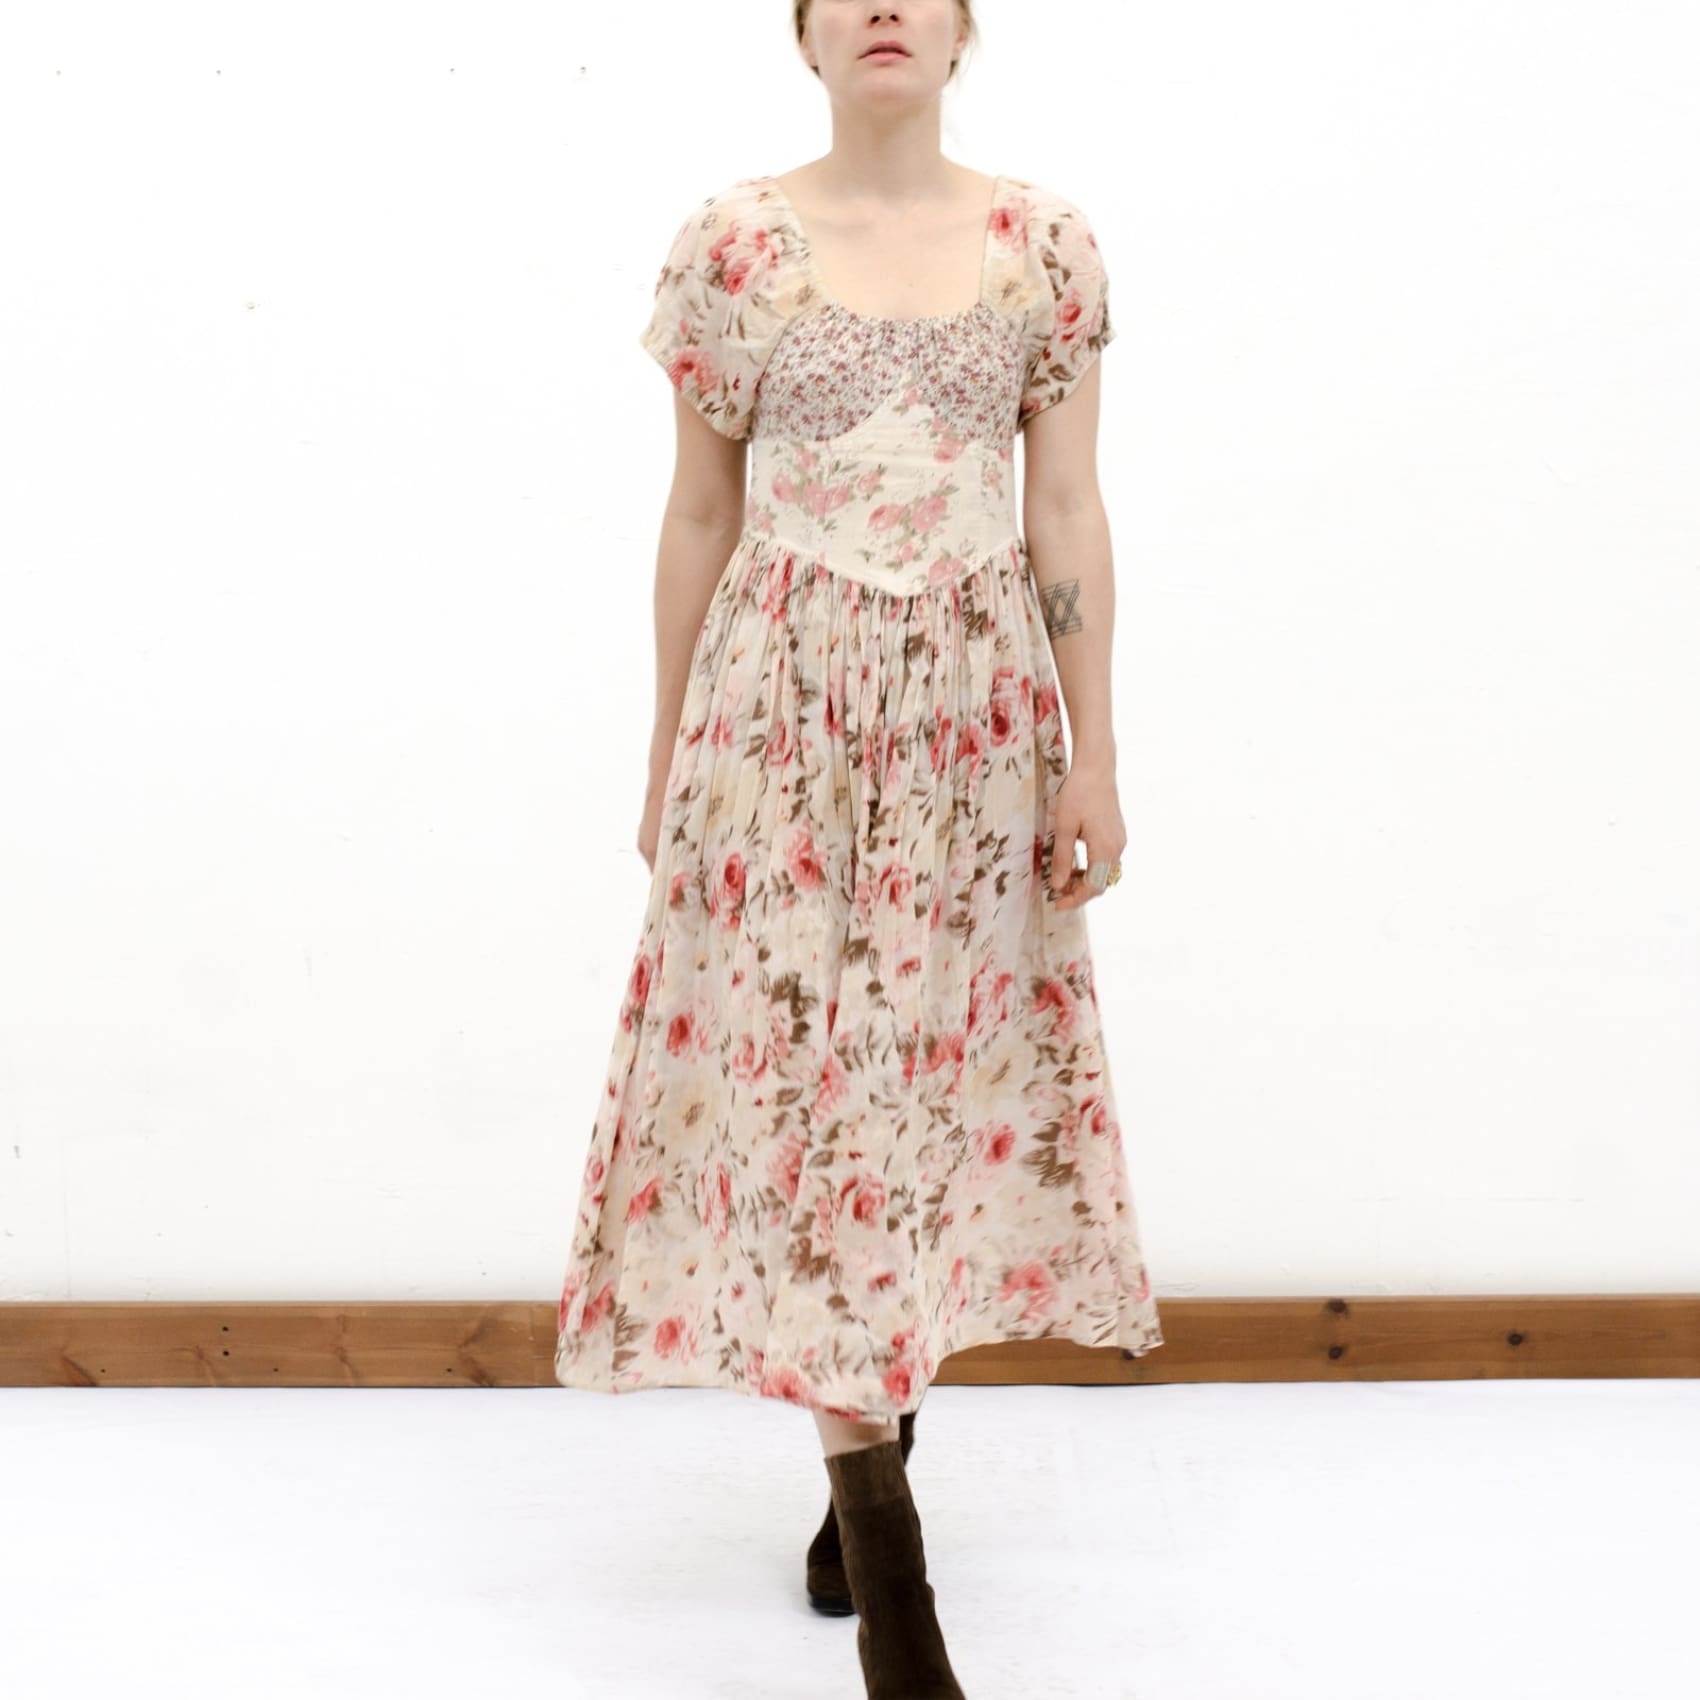 A Romantic Floral Print Sundress by Laura Ashley